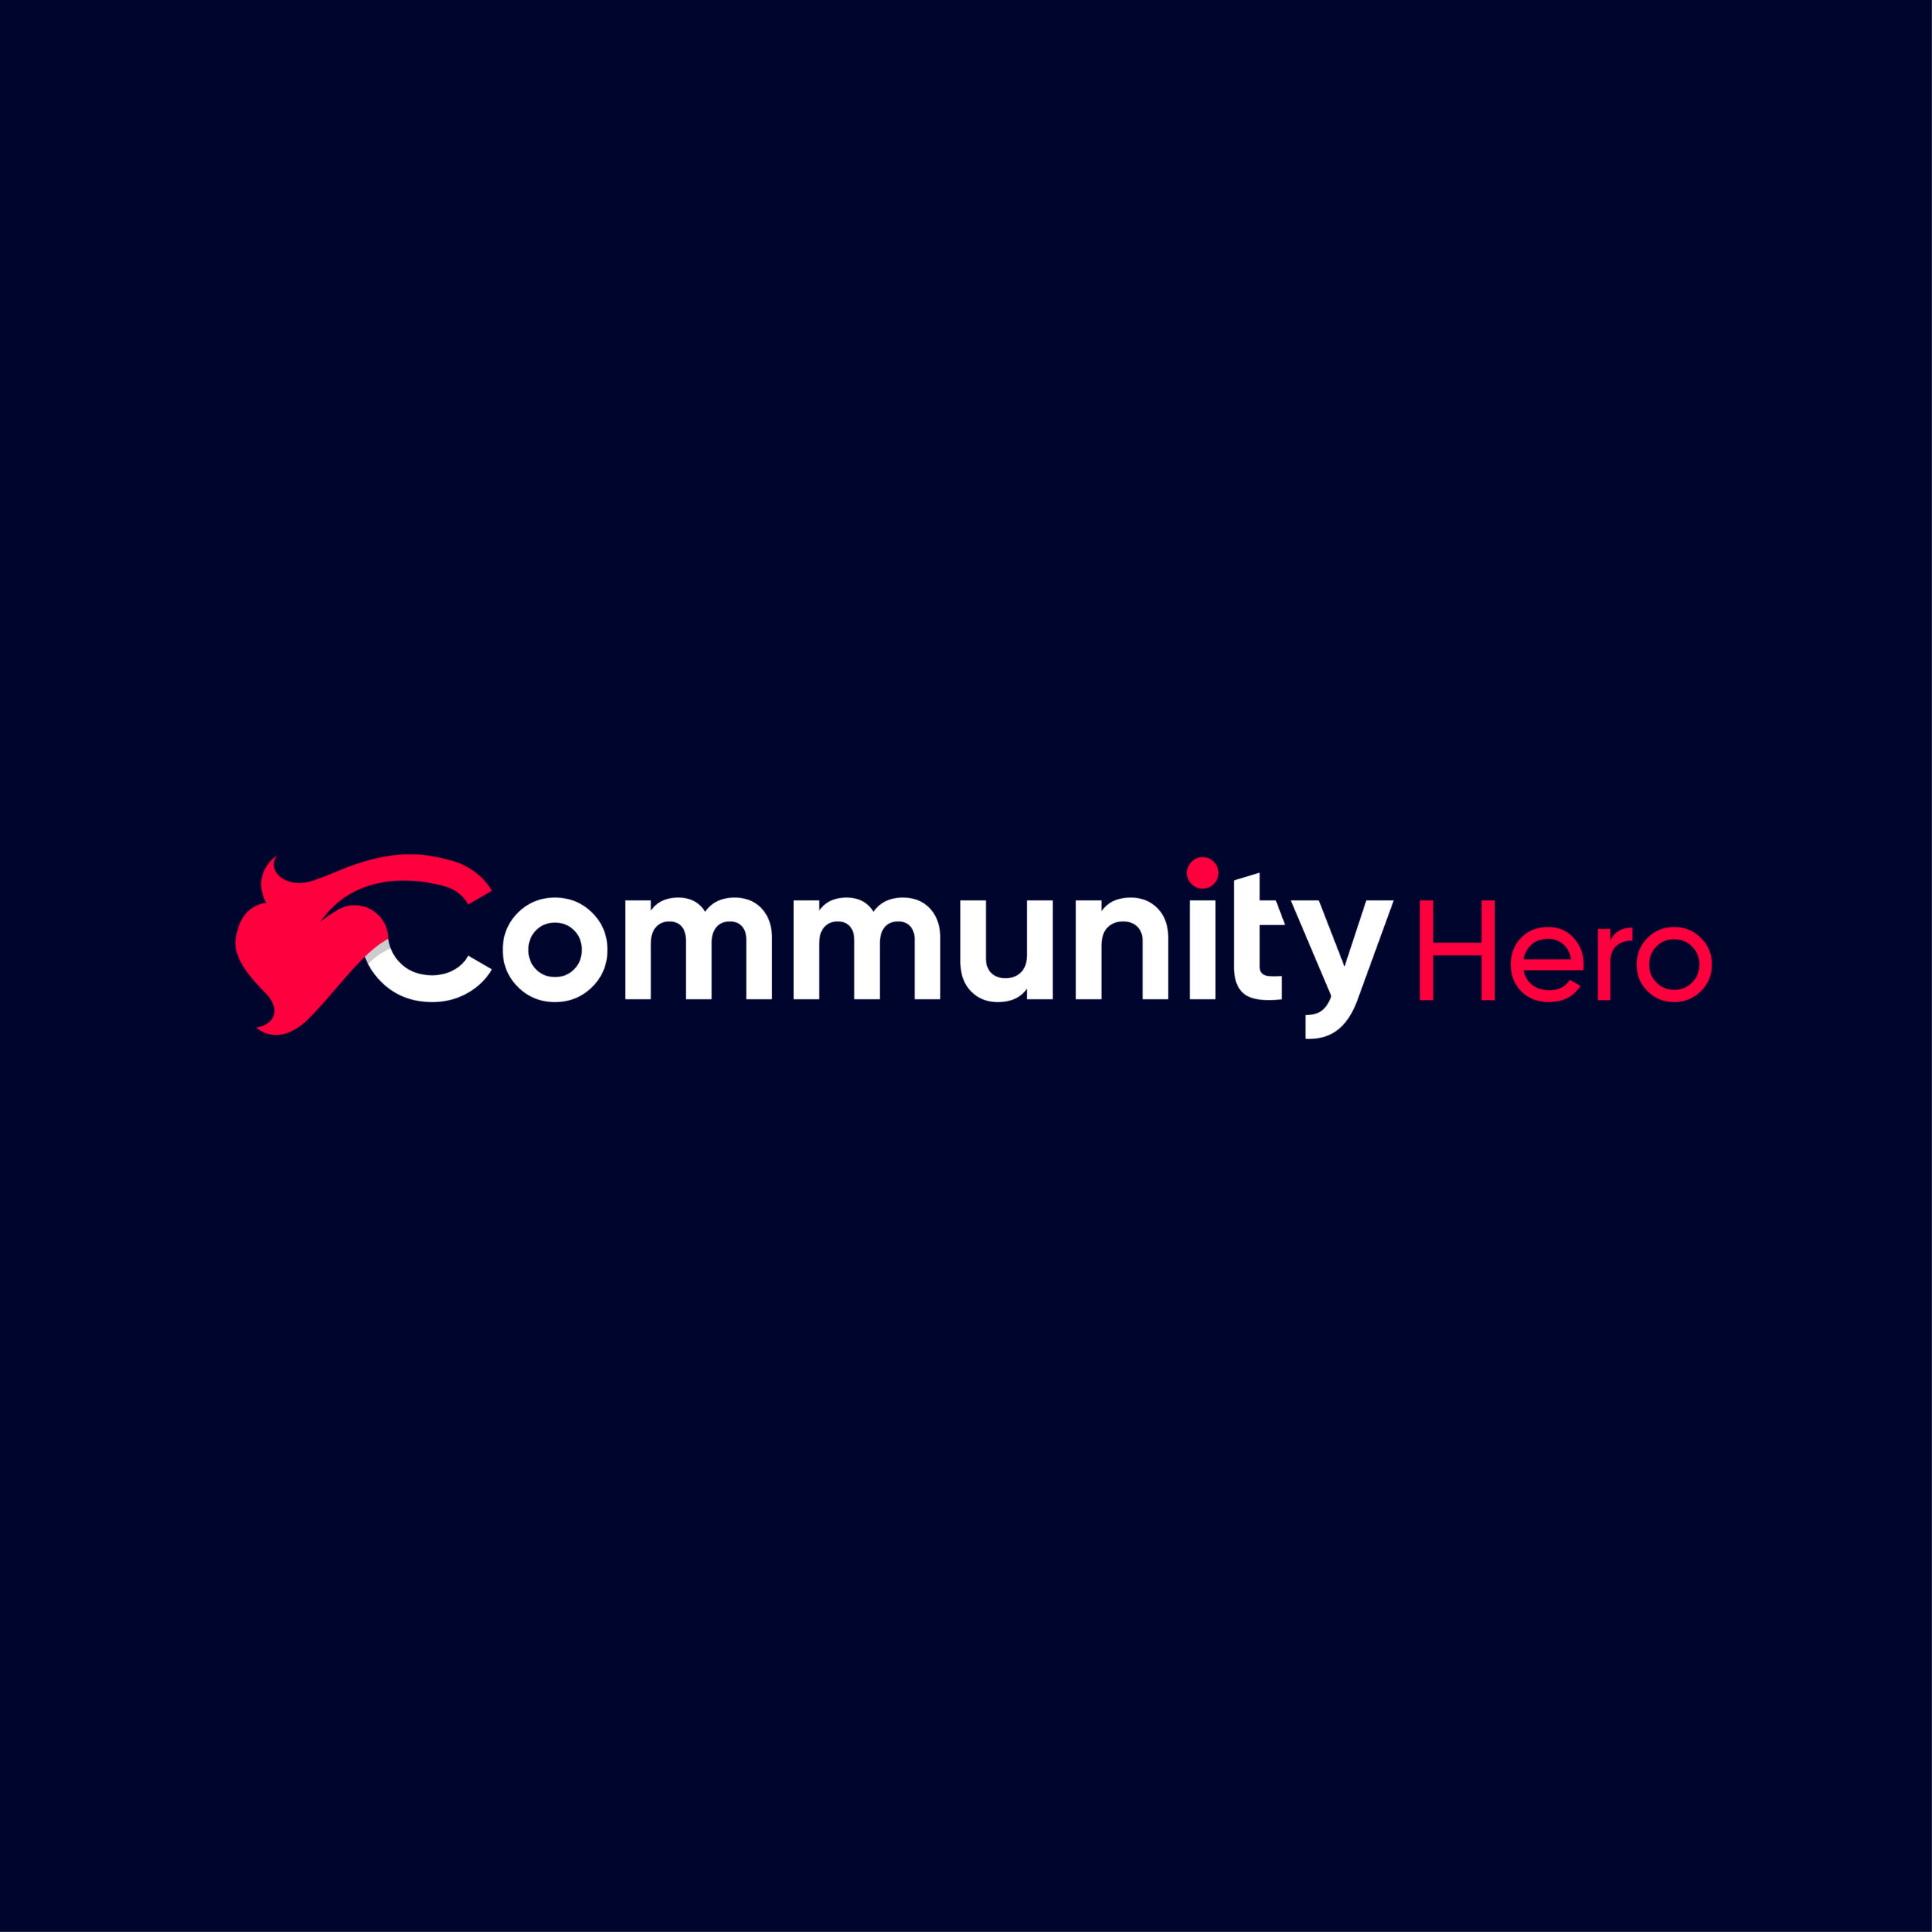 Community Hero Logo